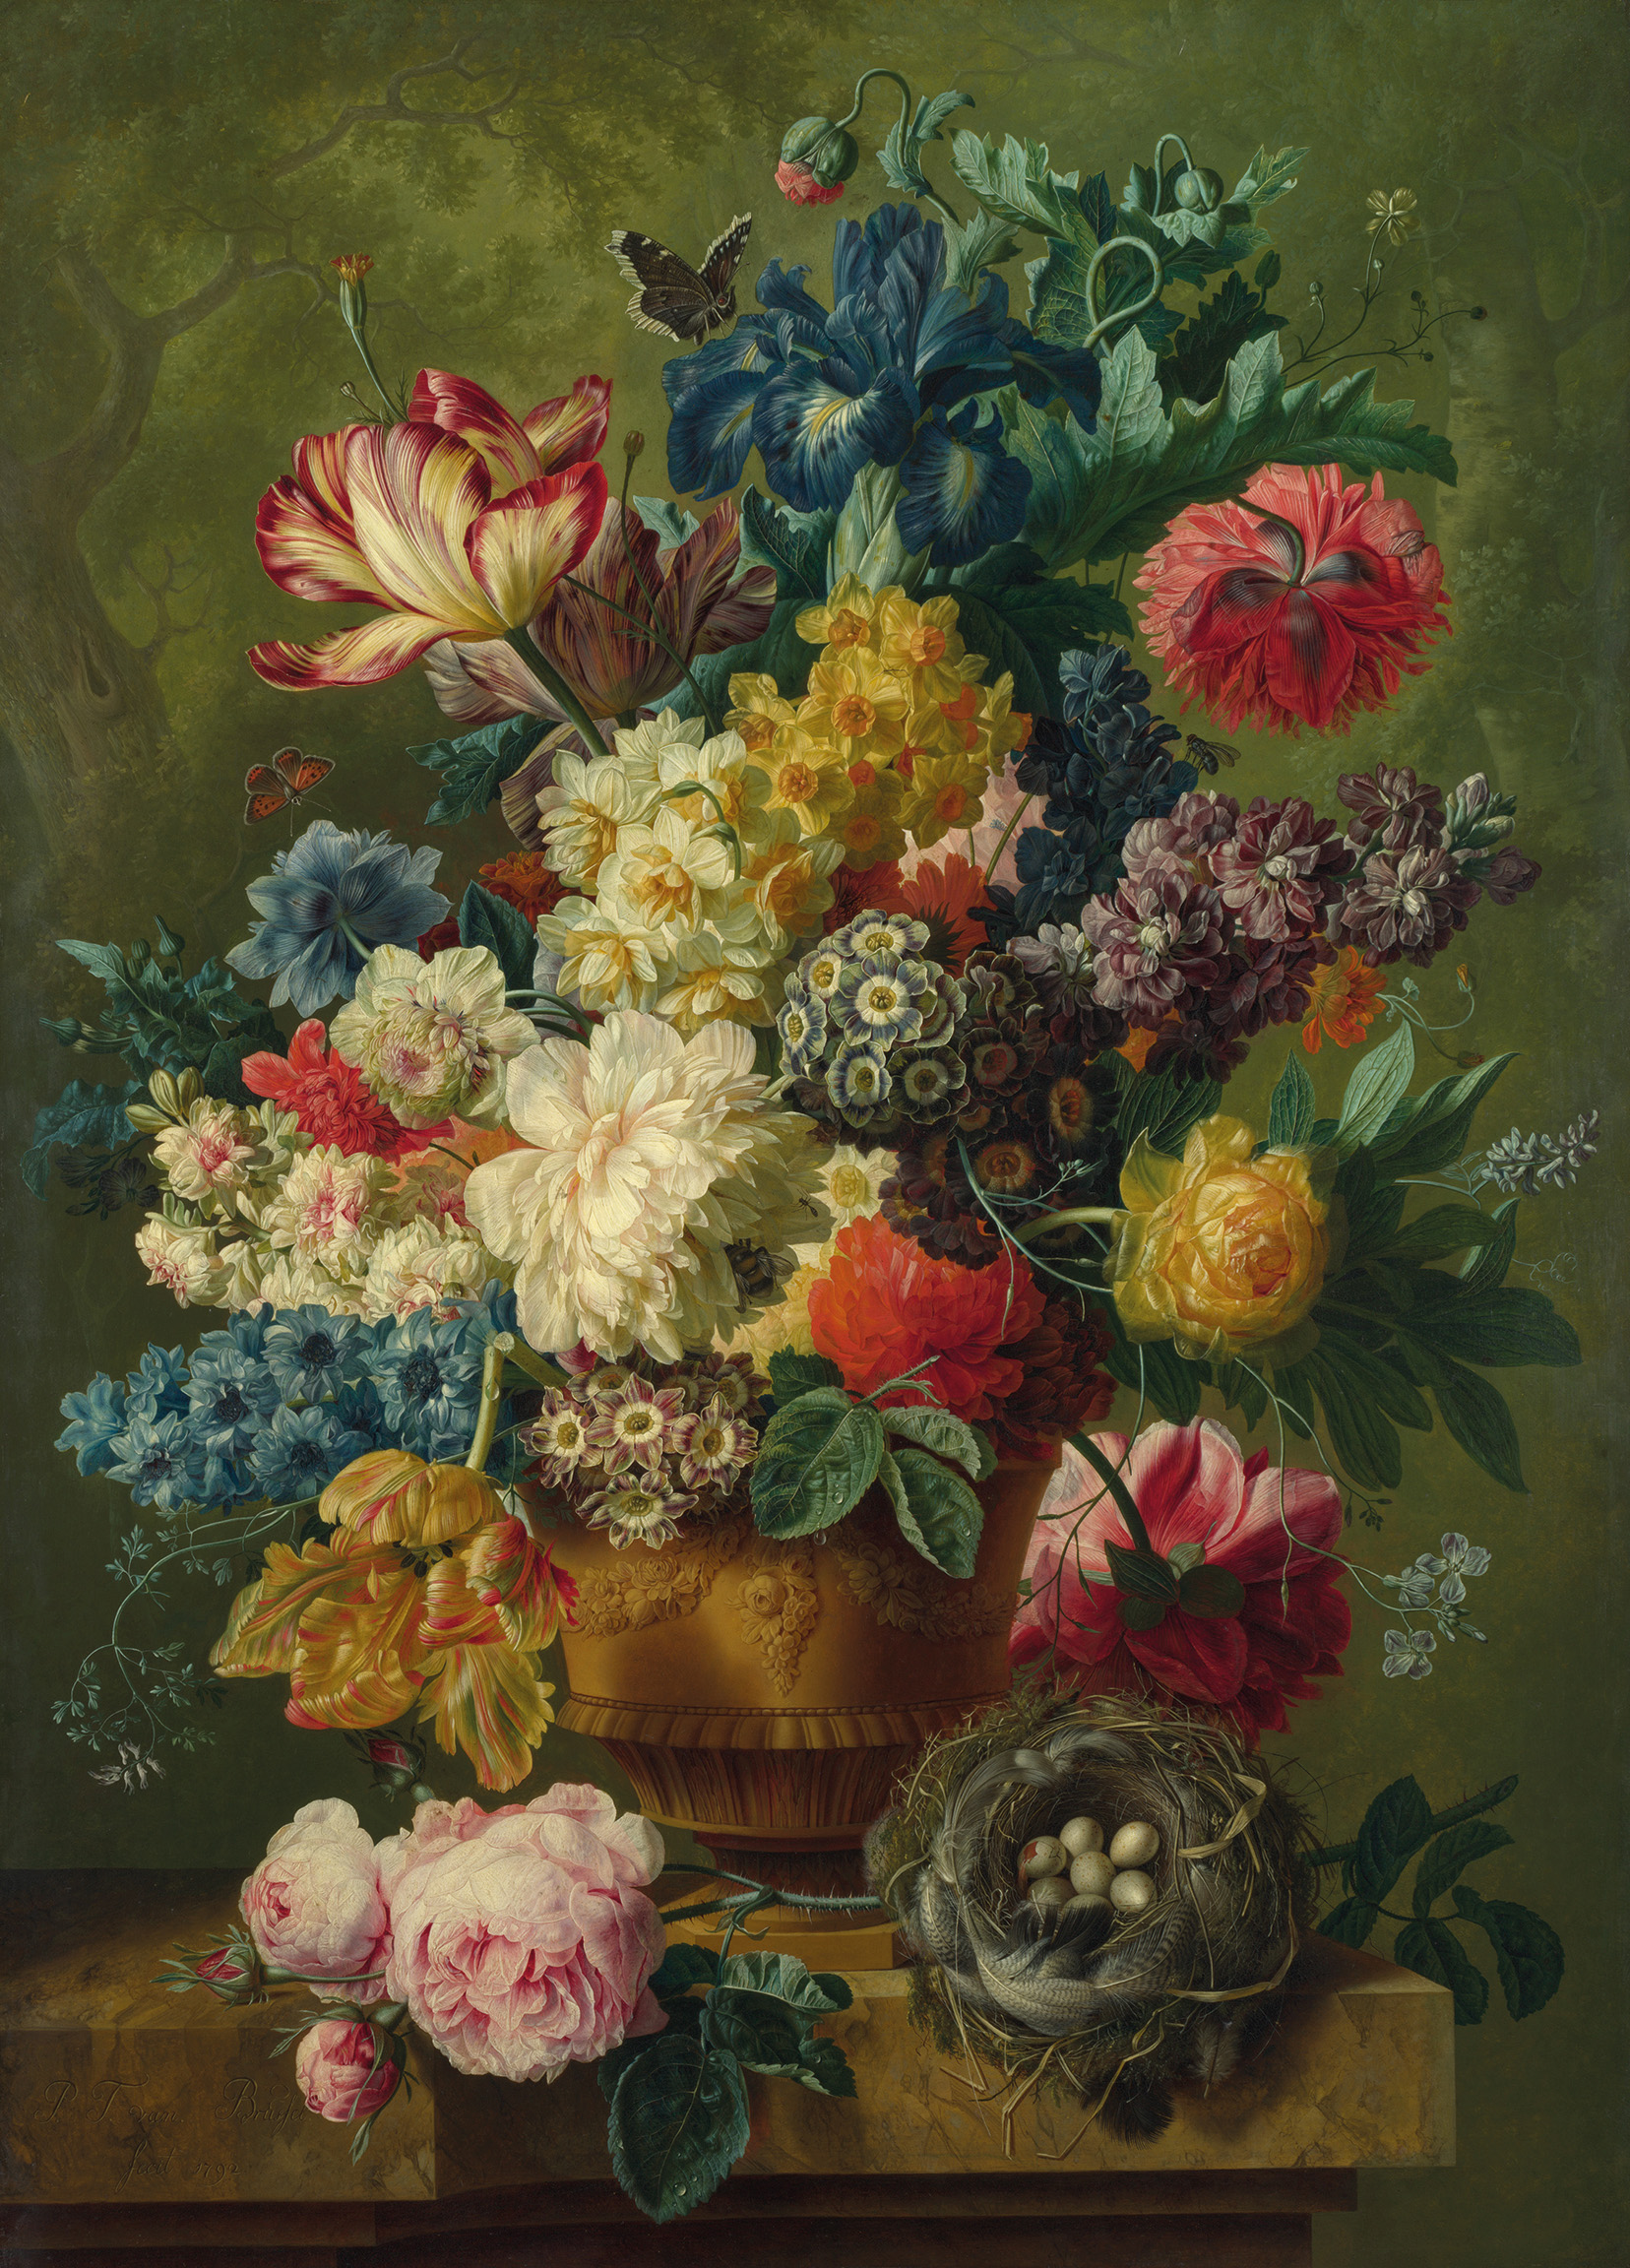 Flowers in a Vase I